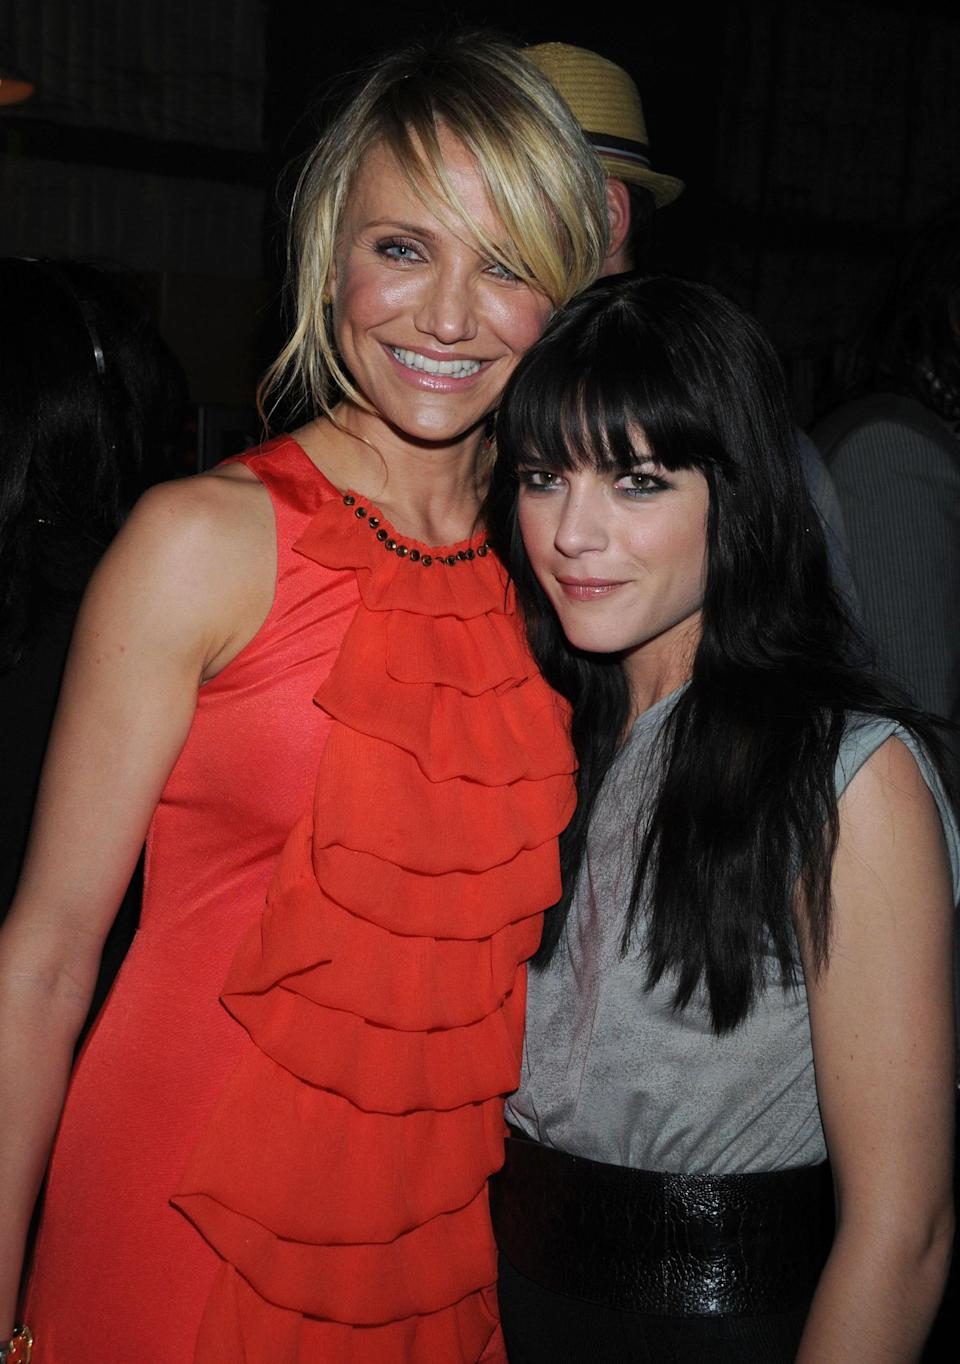 Cameron Diaz reportedly confided in Selma Blair that she has retired from showbiz. Here are the women, and former co-stars, in 2008. (Photo: Getty Images)